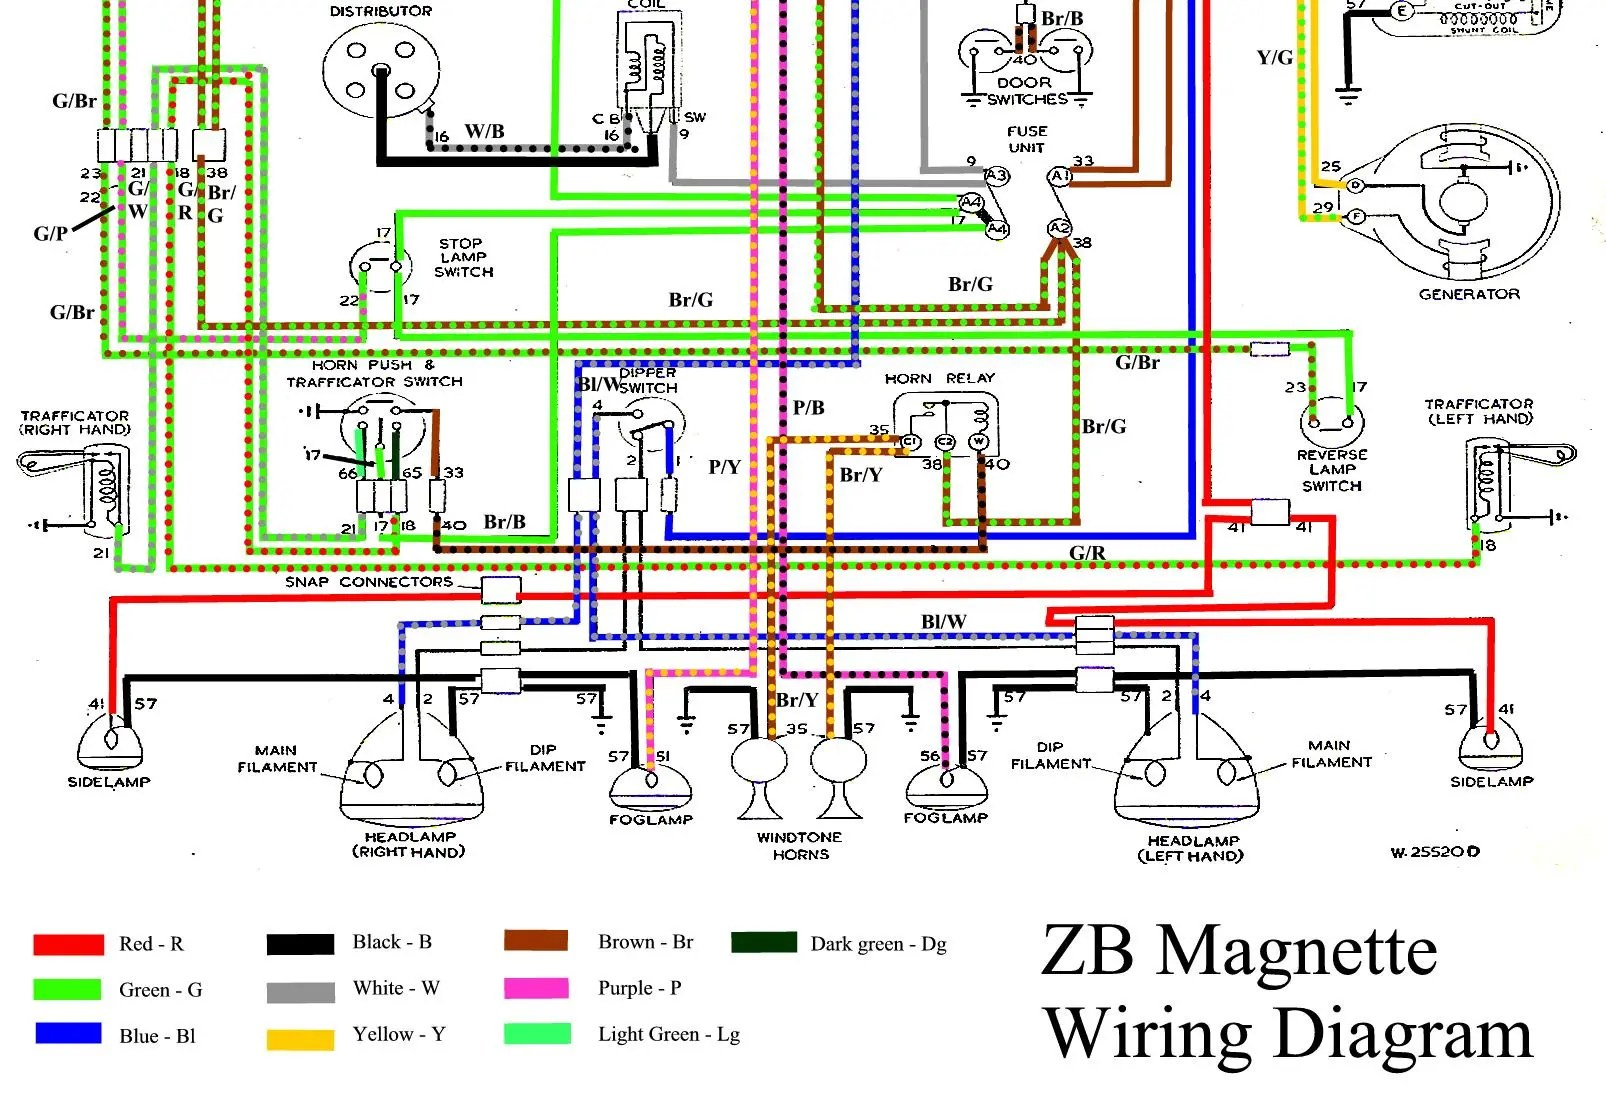 hight resolution of 1955 mg wiring diagram wiring diagram usedwiring diagram zb magnette in colour 1955 mg wiring diagram